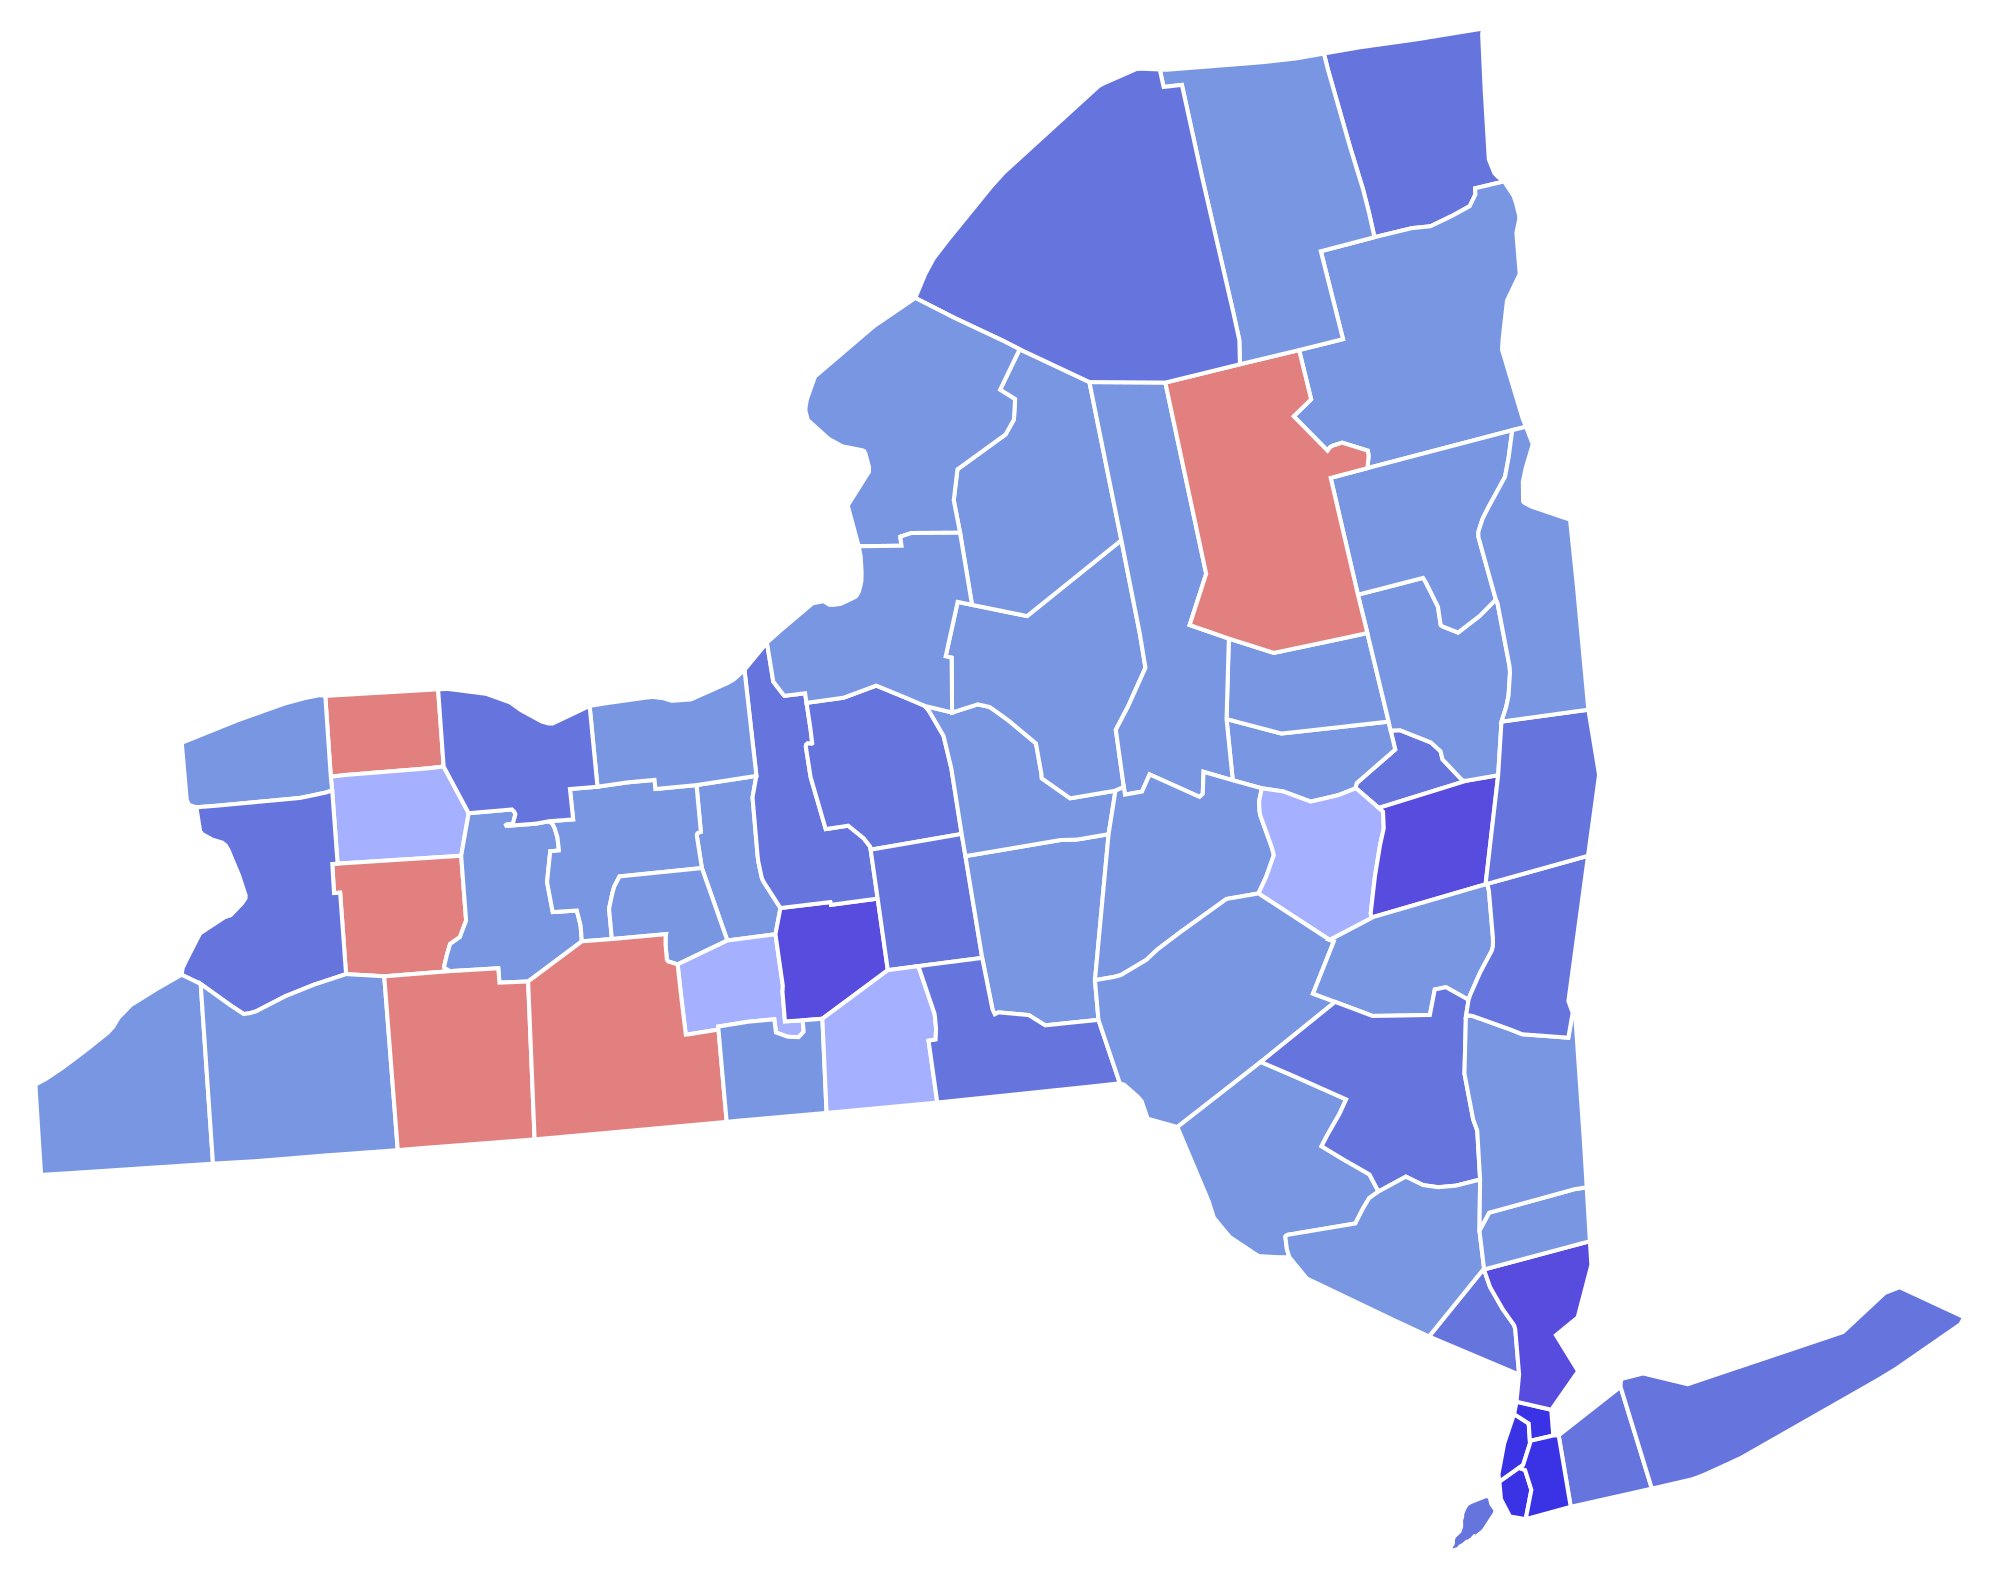 Election clipart election result. File new york senate